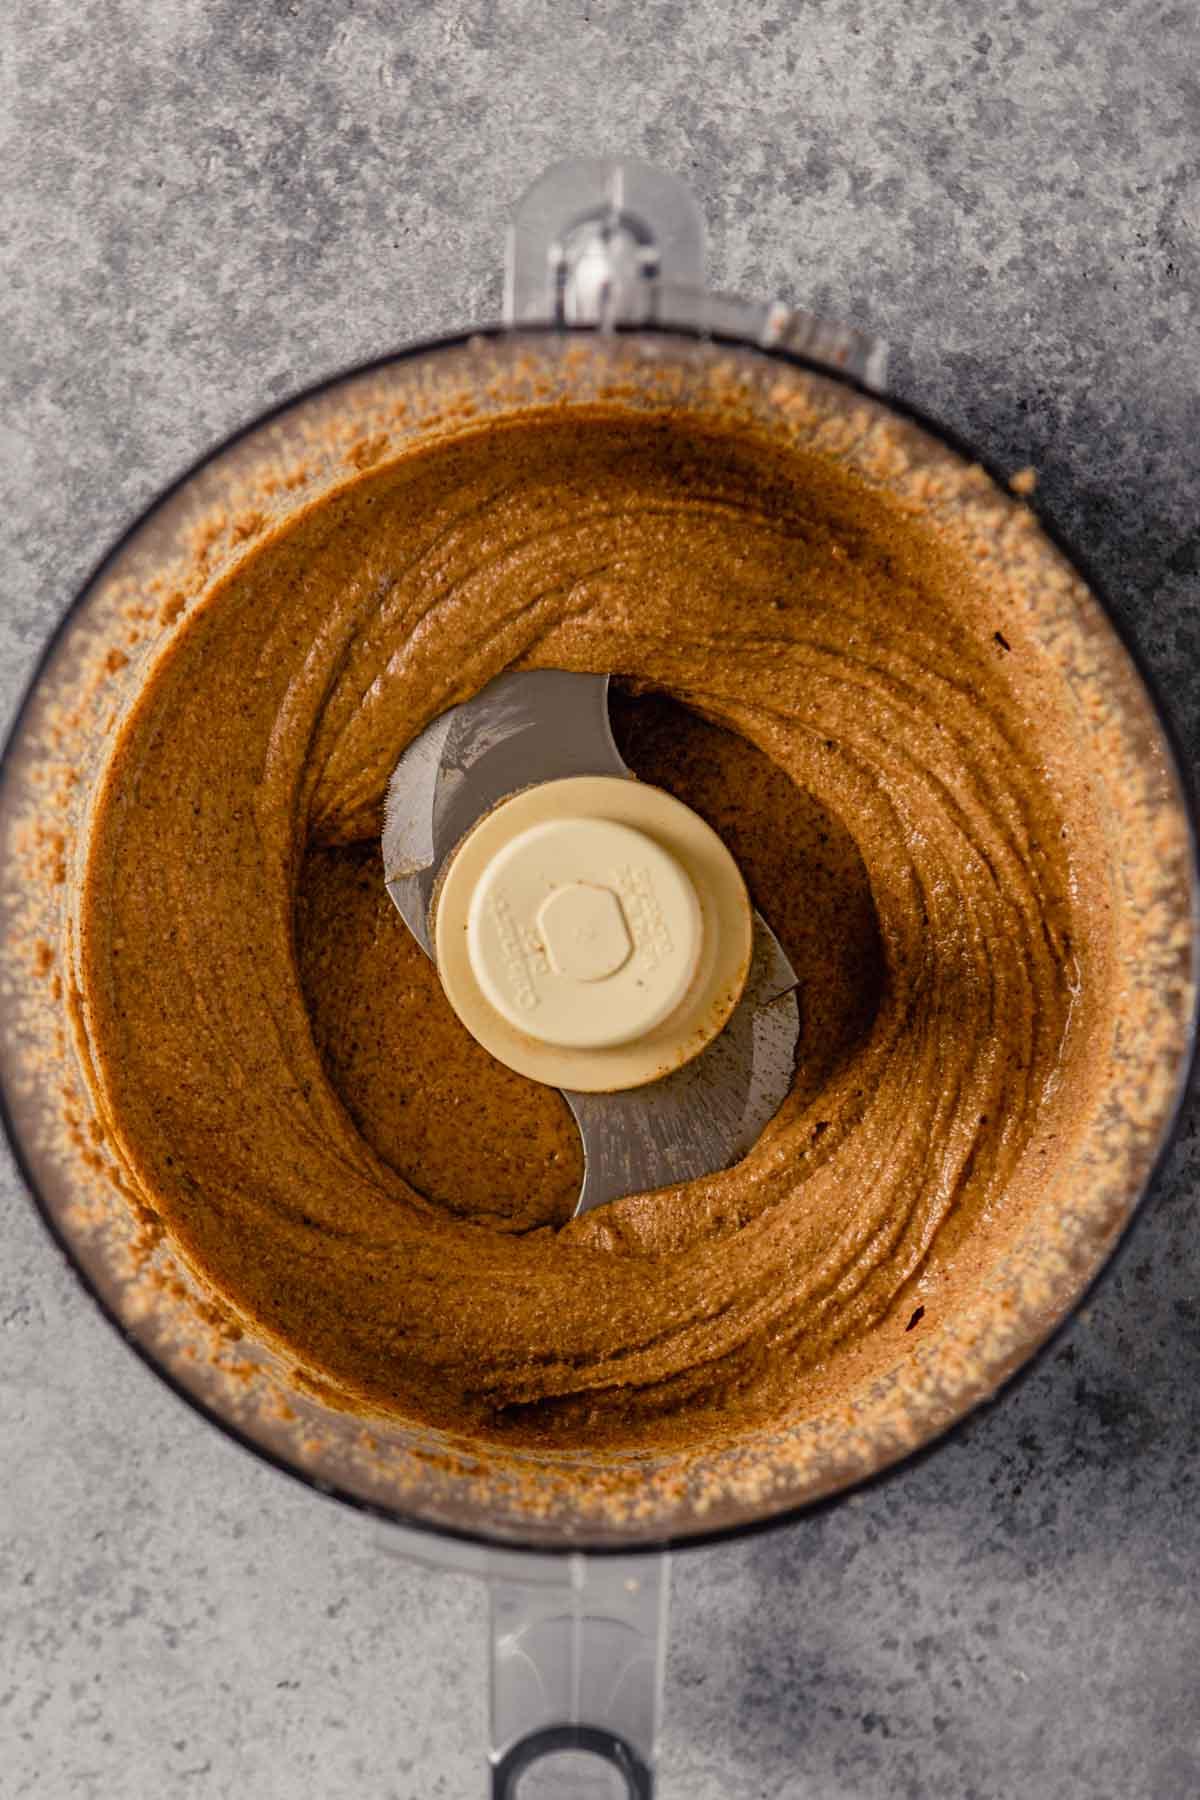 creamy and smooth almond butter in a food processor